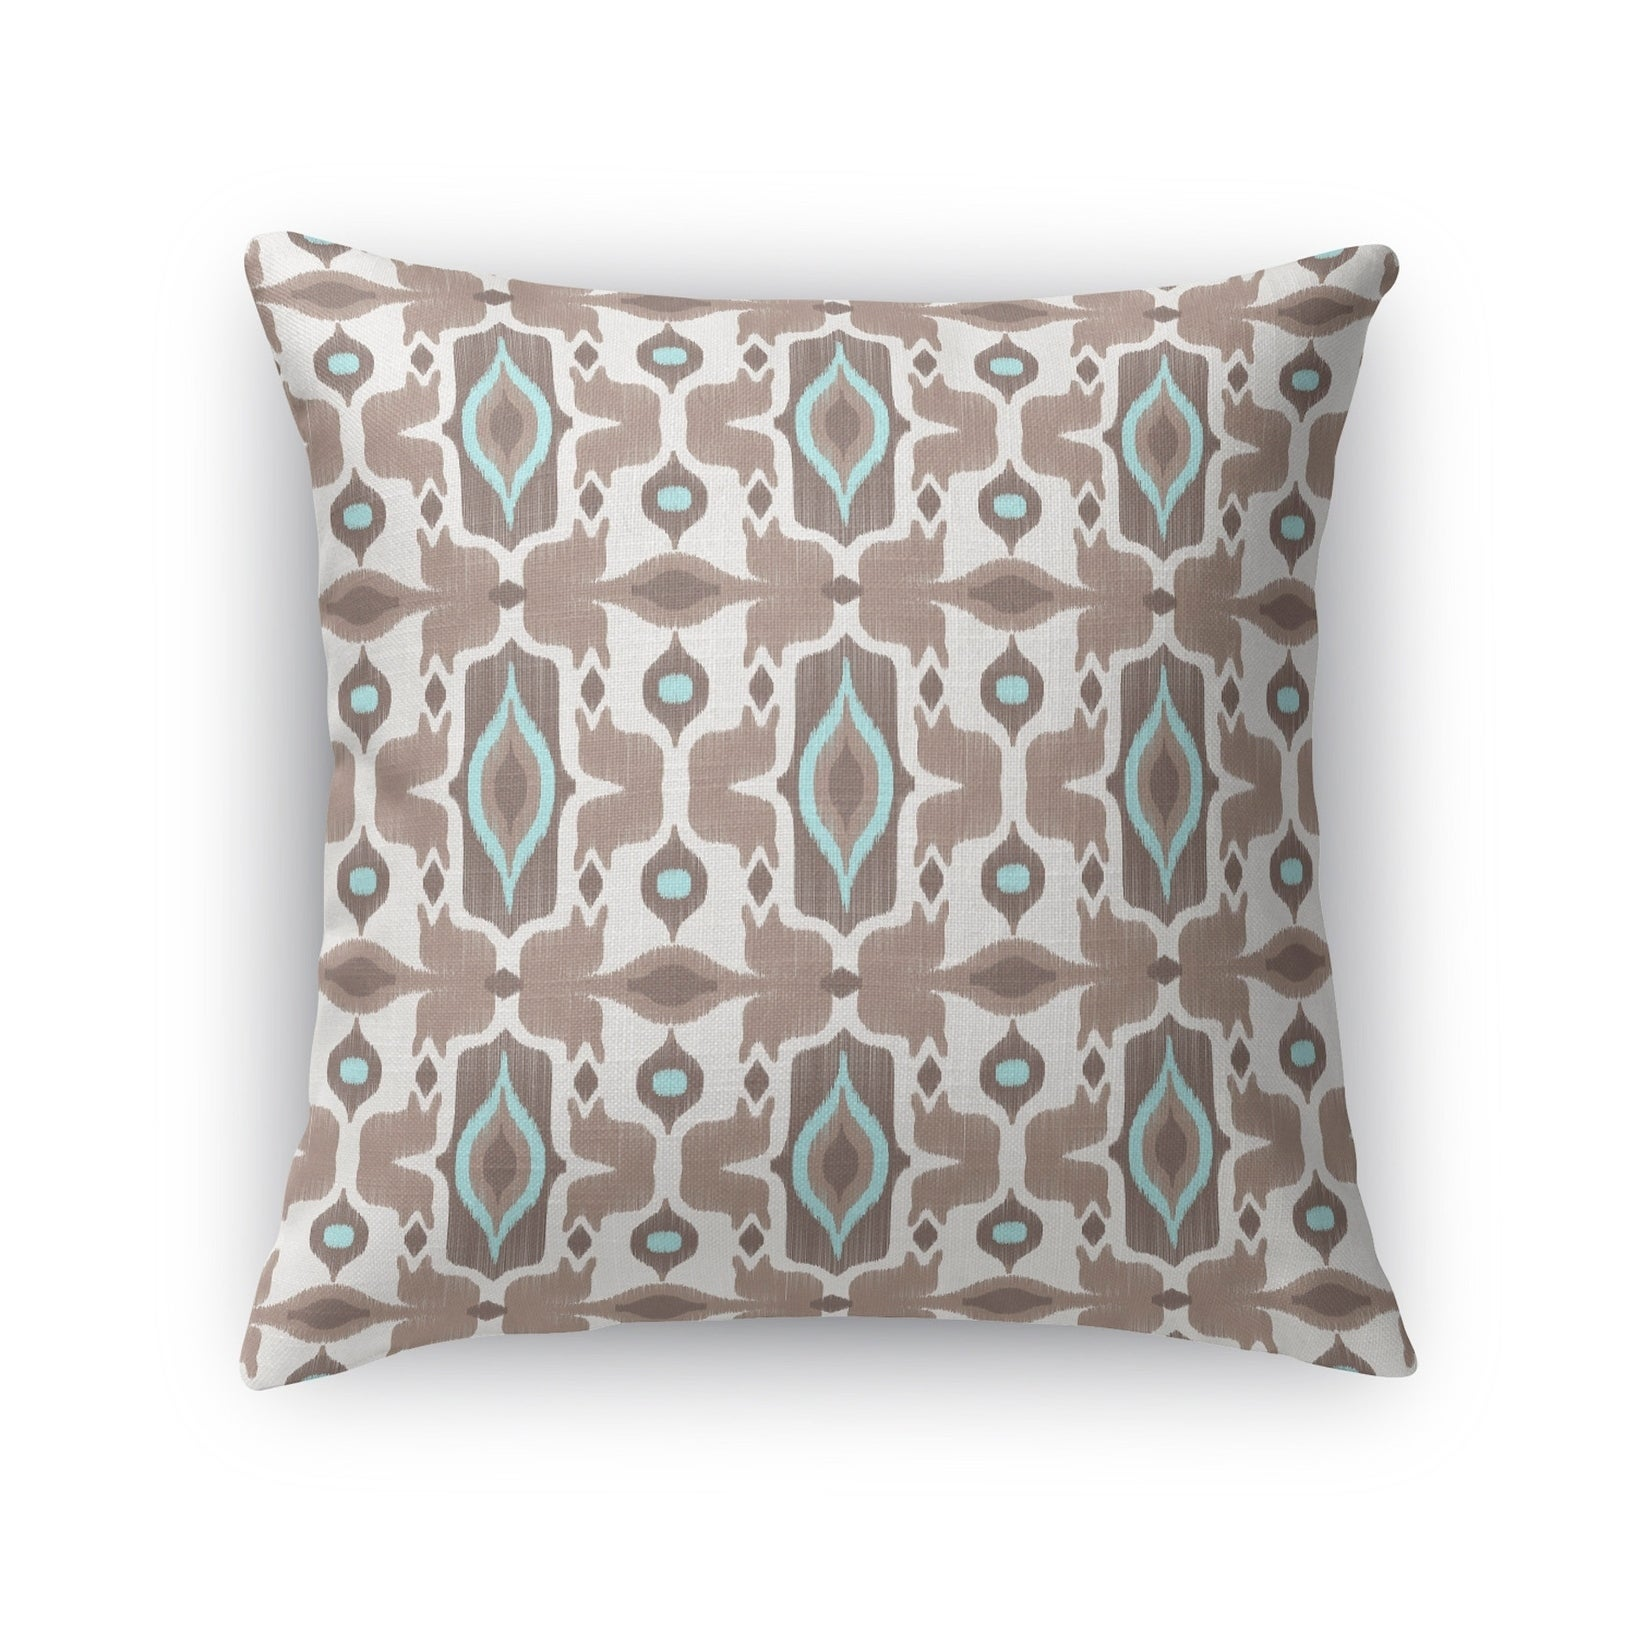 Kavka Designs ivory/ turquoise/ brown mojave accent pillow with insert (16 x 16)